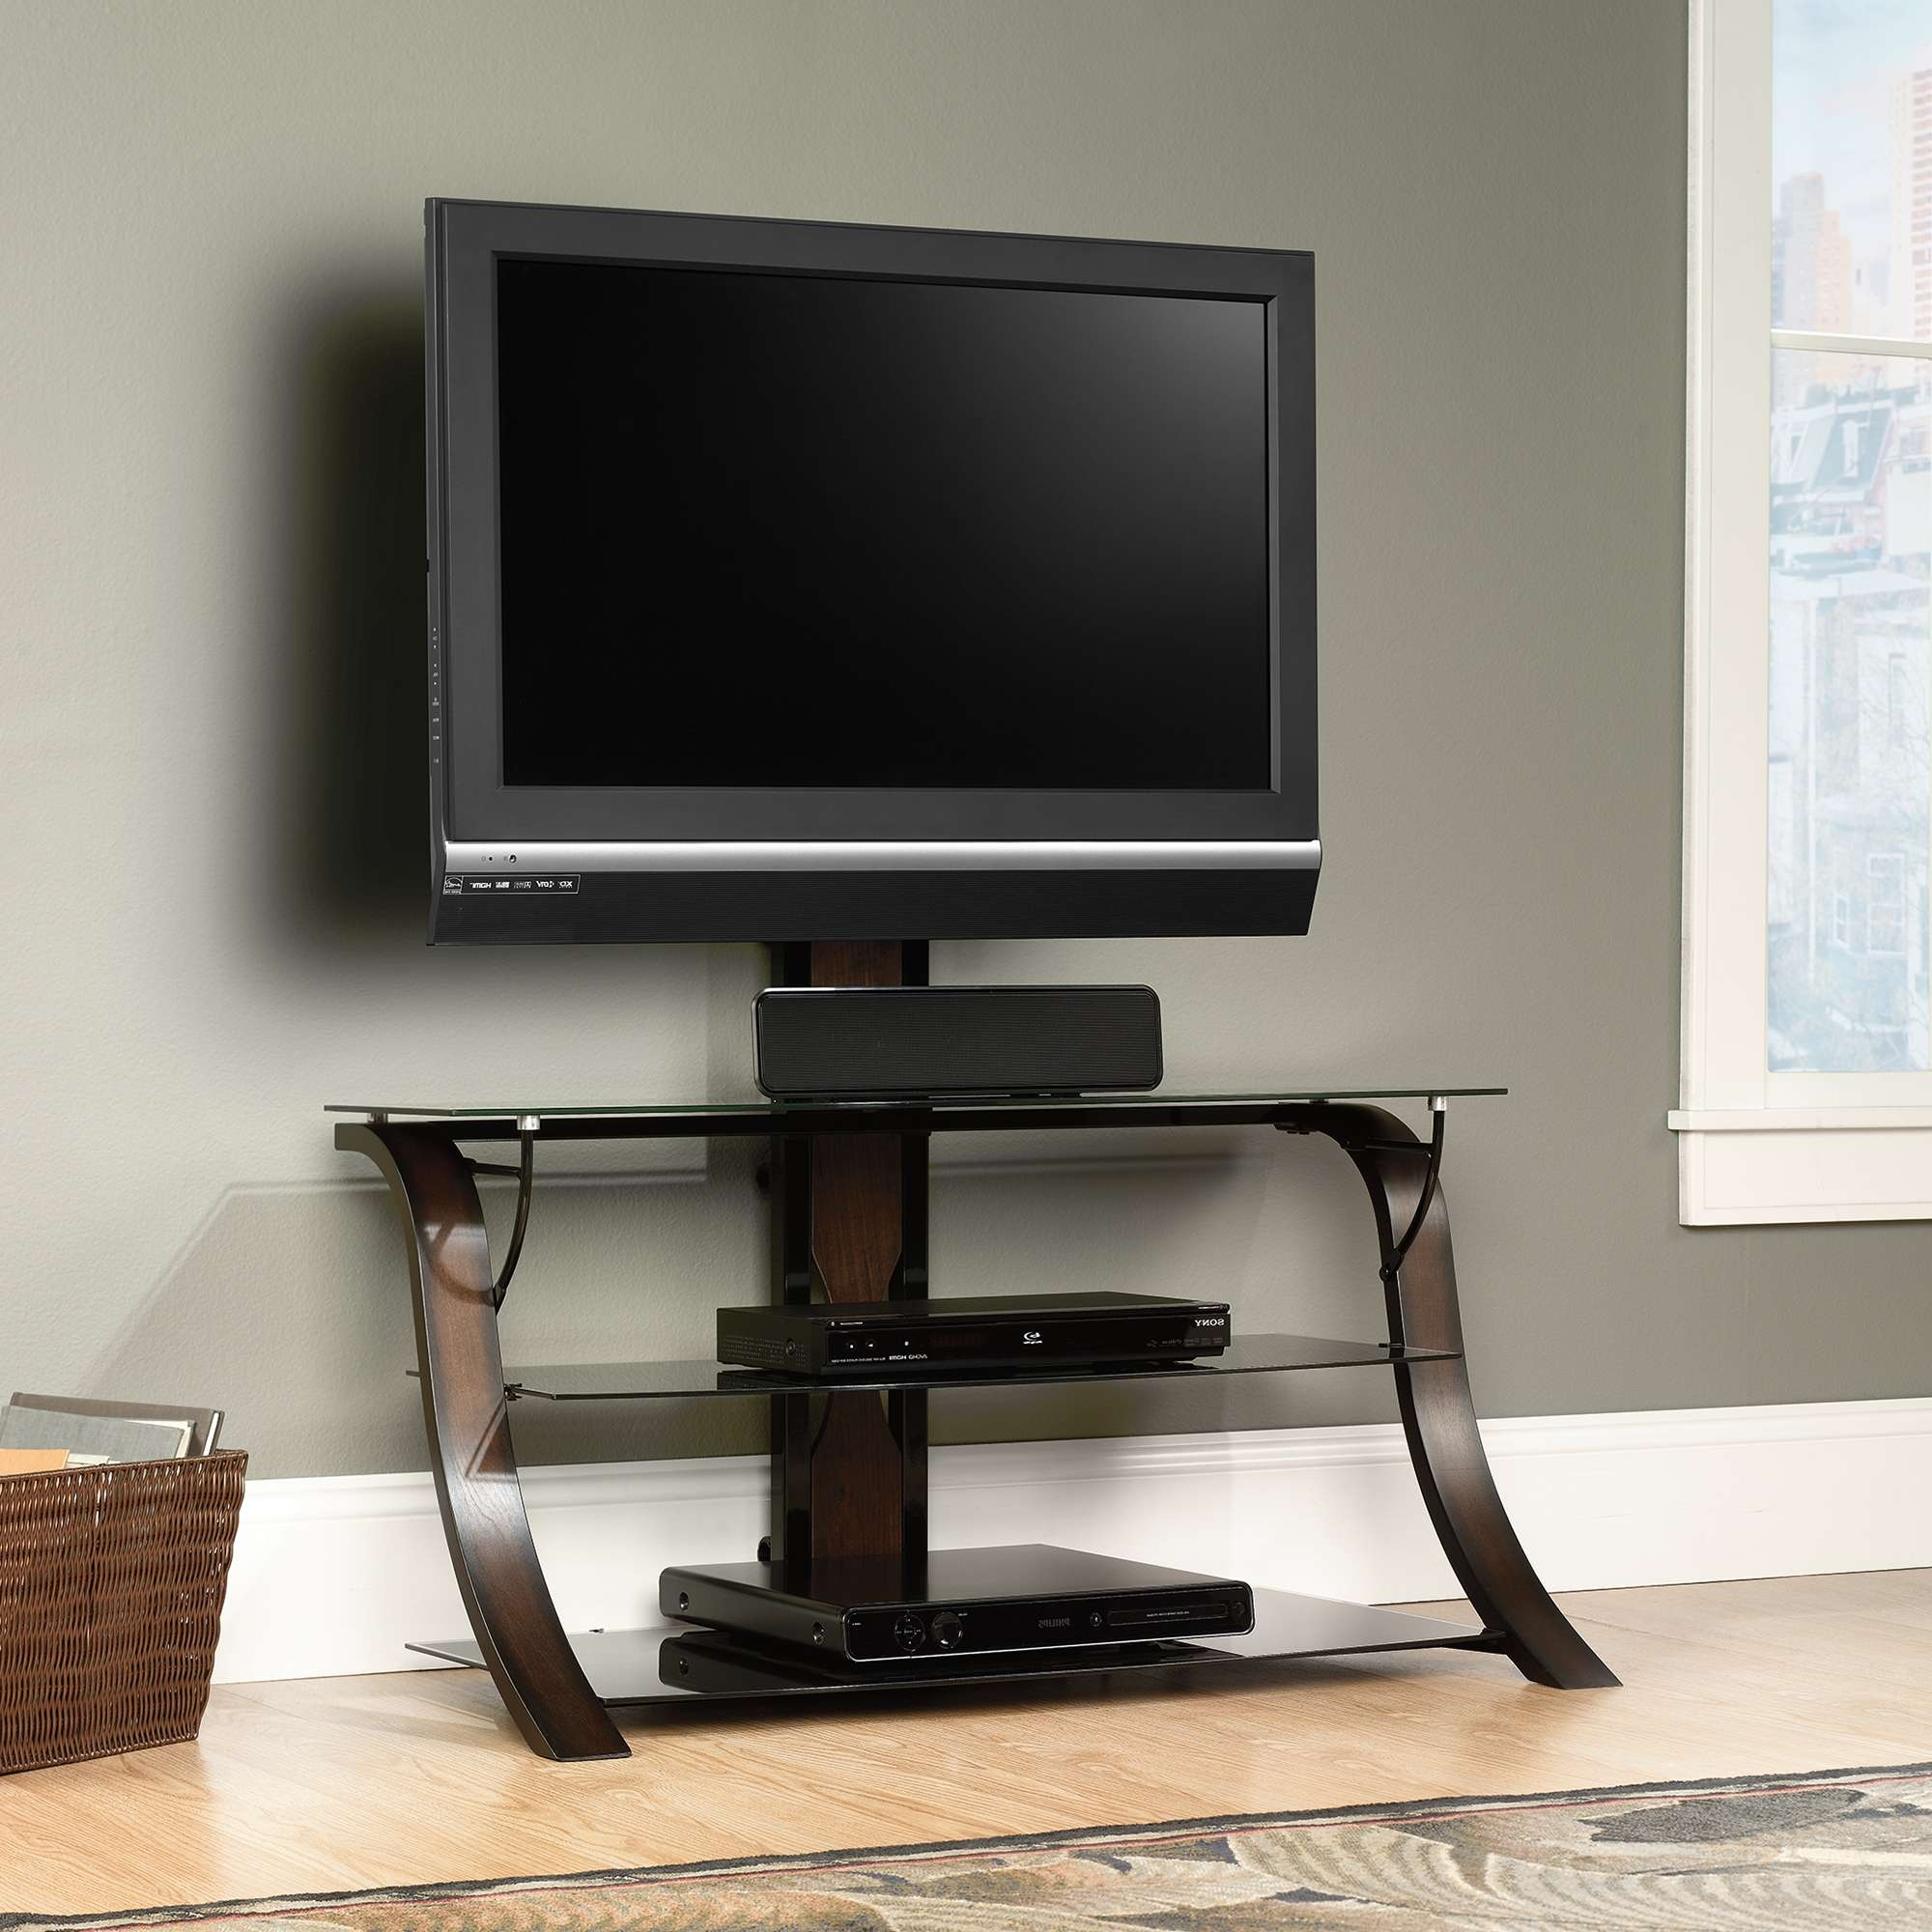 Wood Tv Stand Withnt Furnitures Flat Screen Standsntswoodnts For Regarding Wood Tv Stands With Swivel Mount (View 7 of 15)